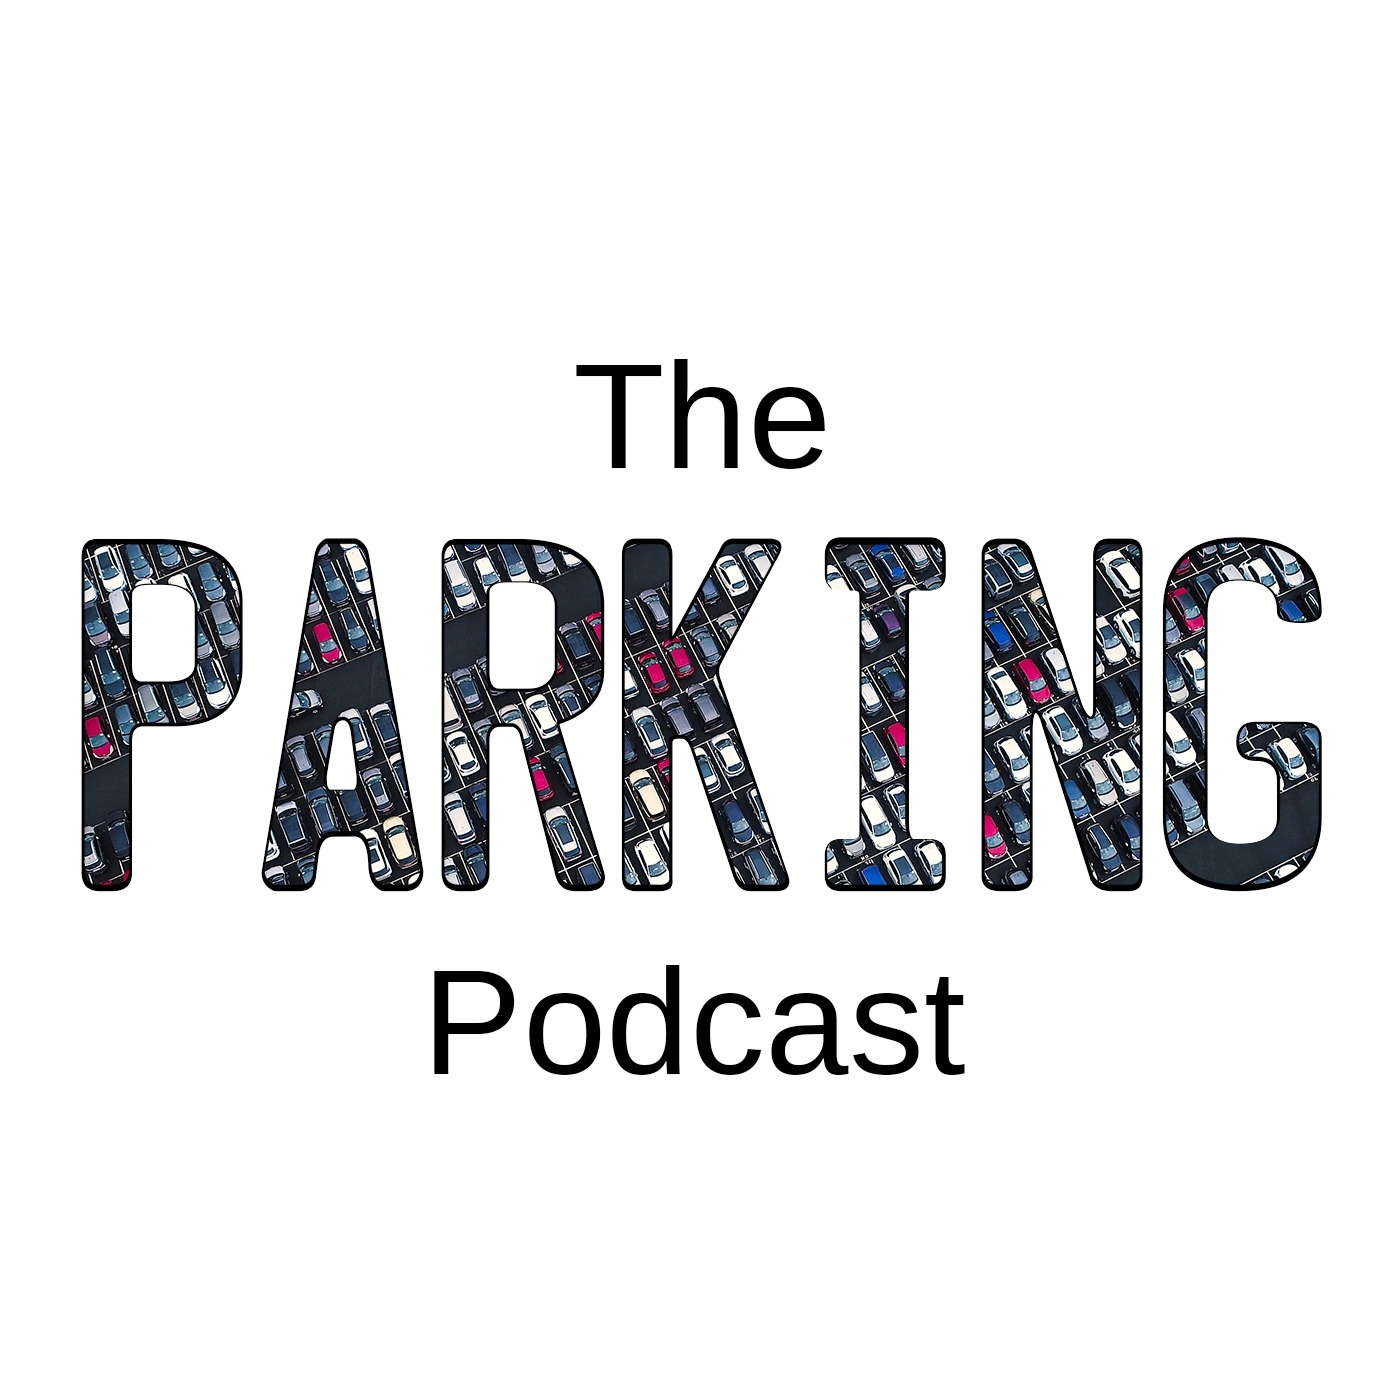 E2 - An Interview with Gary Means and a Conversation about Accessible Parking